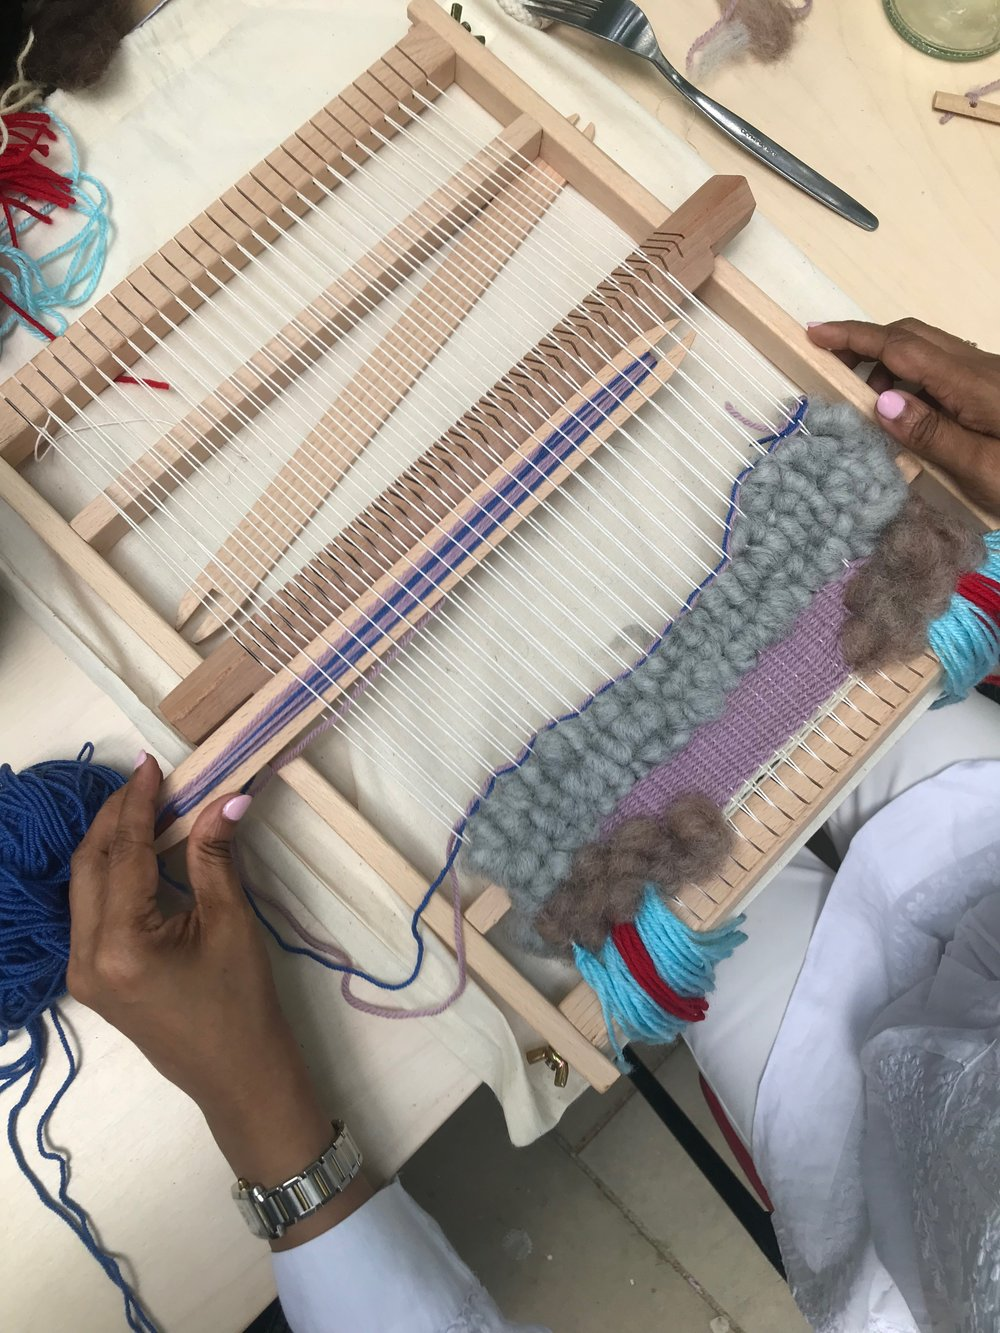 FRAME WEAVING WORKSHOP FROM WASTE - WITH THE MAIYET COLLECTIVE AT HARVEY NICHOLS